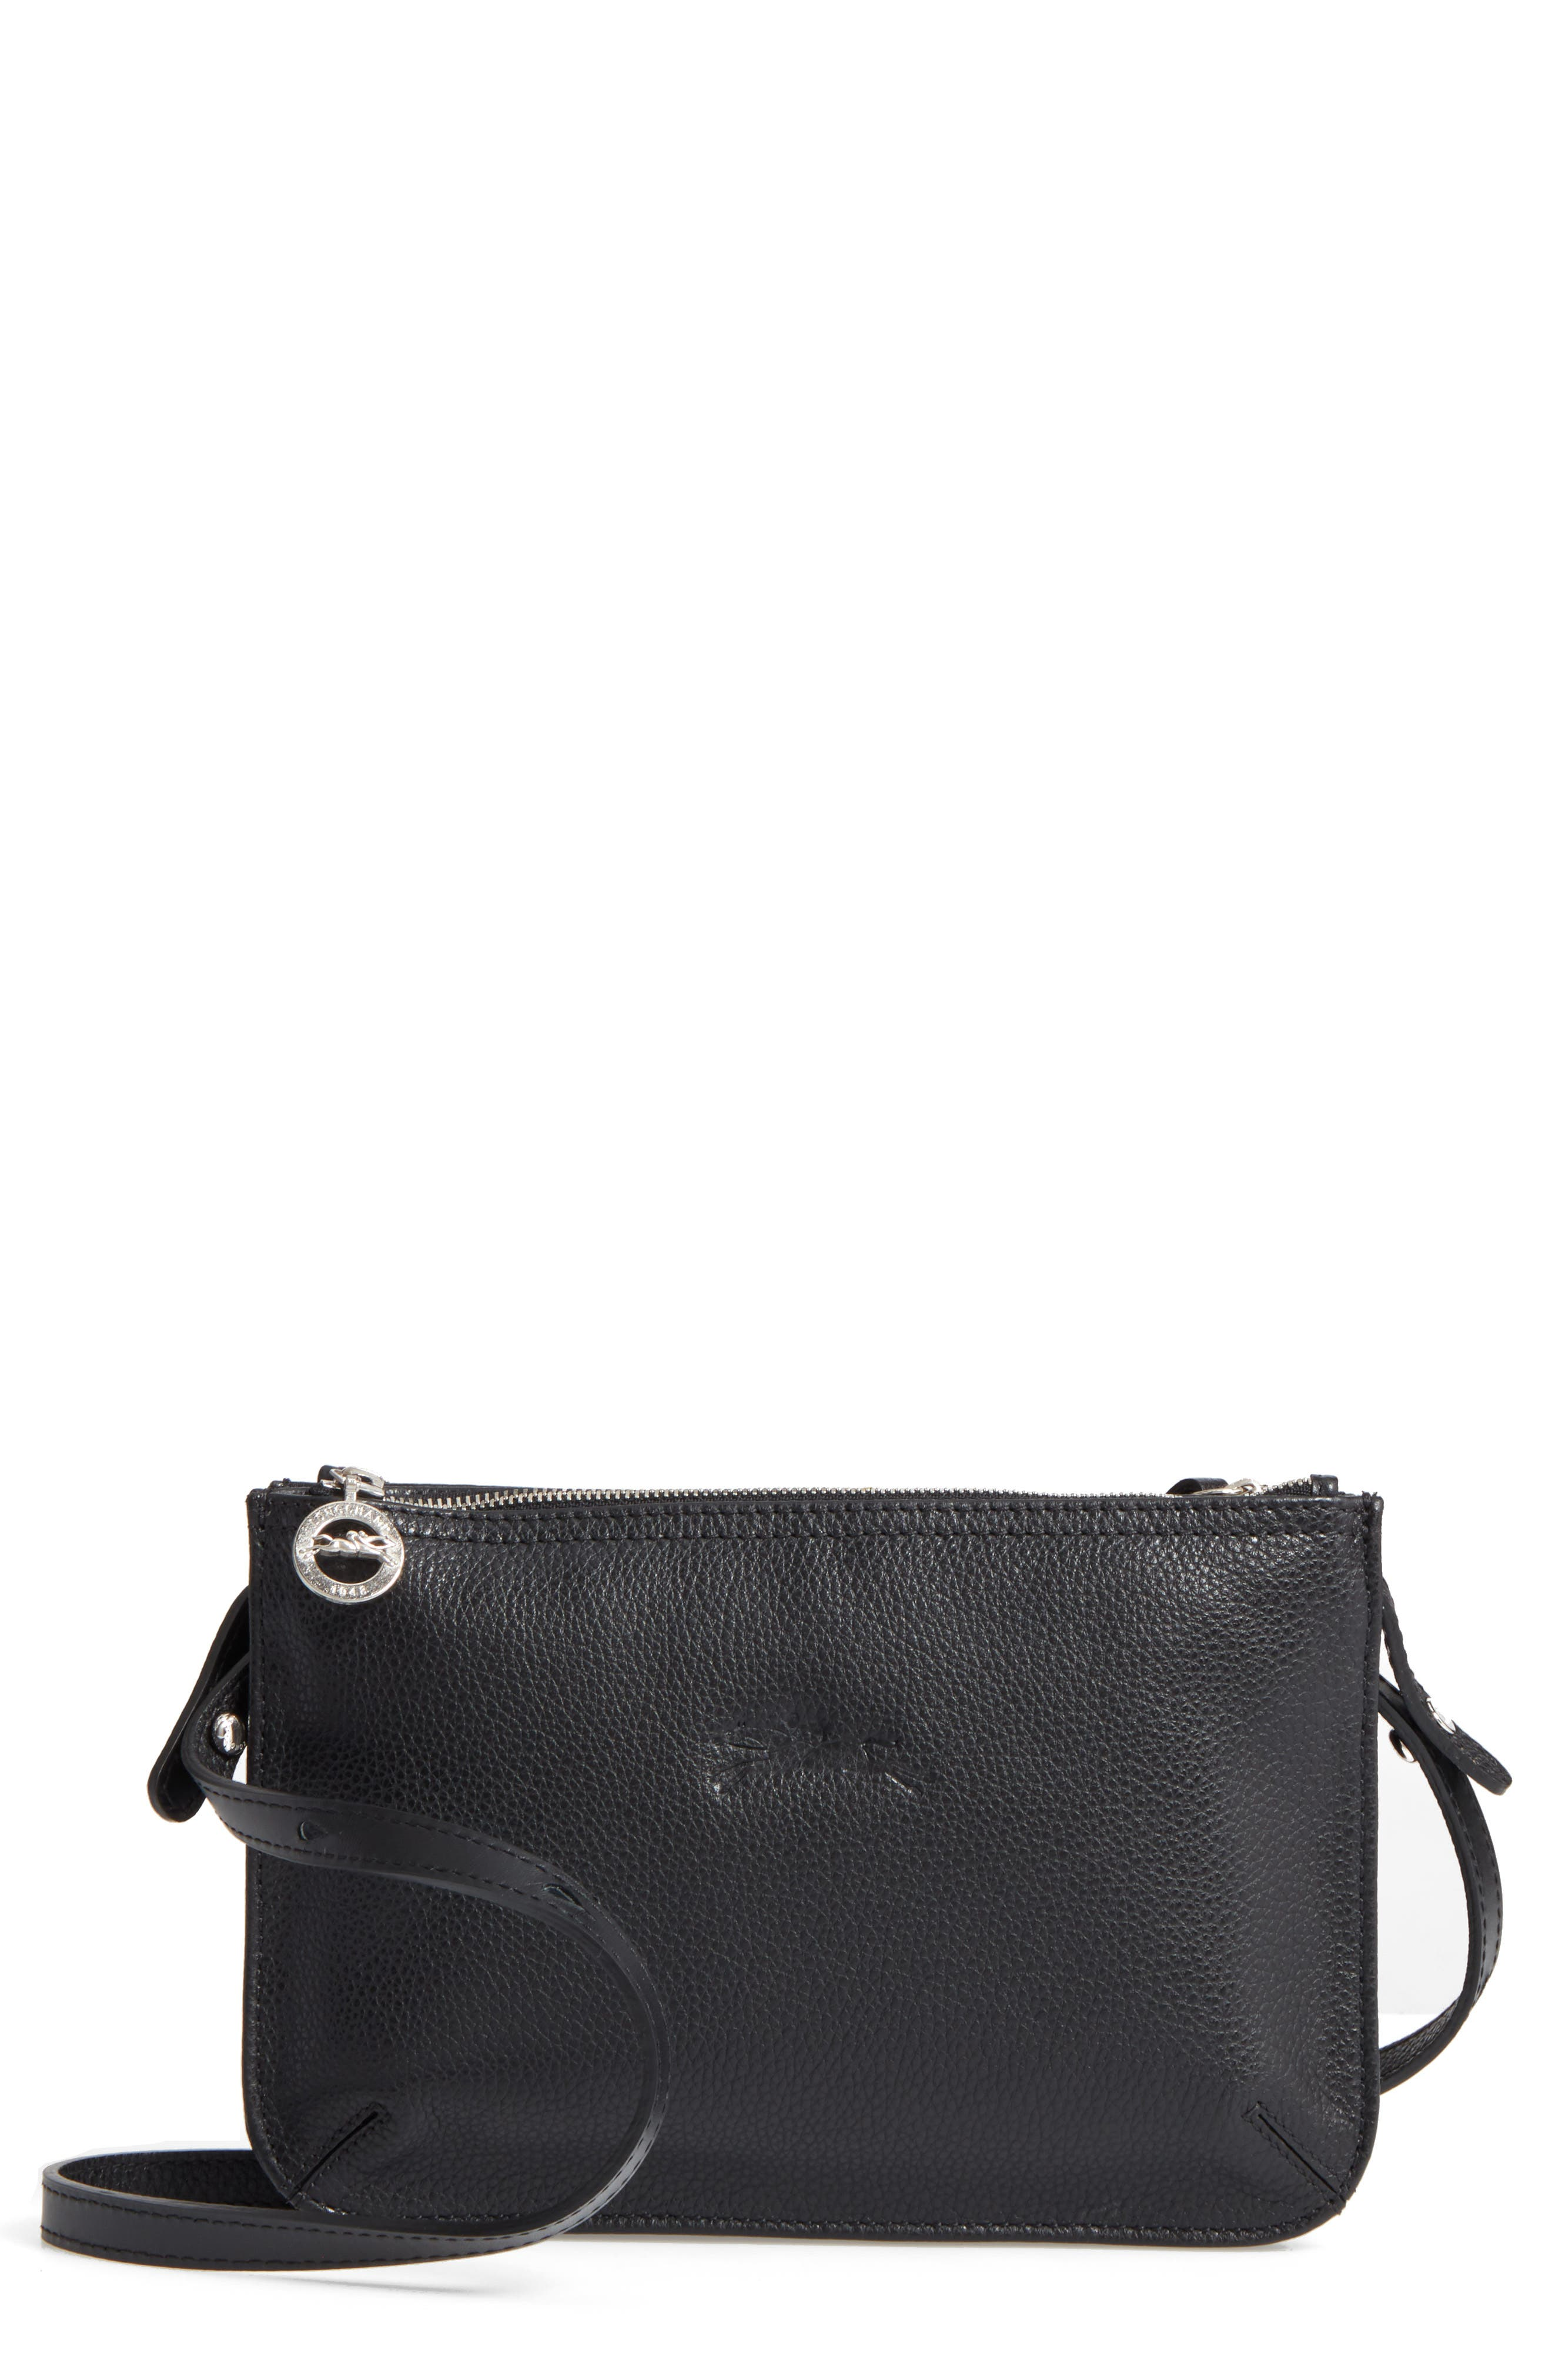 Alternate Image 1 Selected - Longchamp Le Foulonne Leather Crossbody Bag